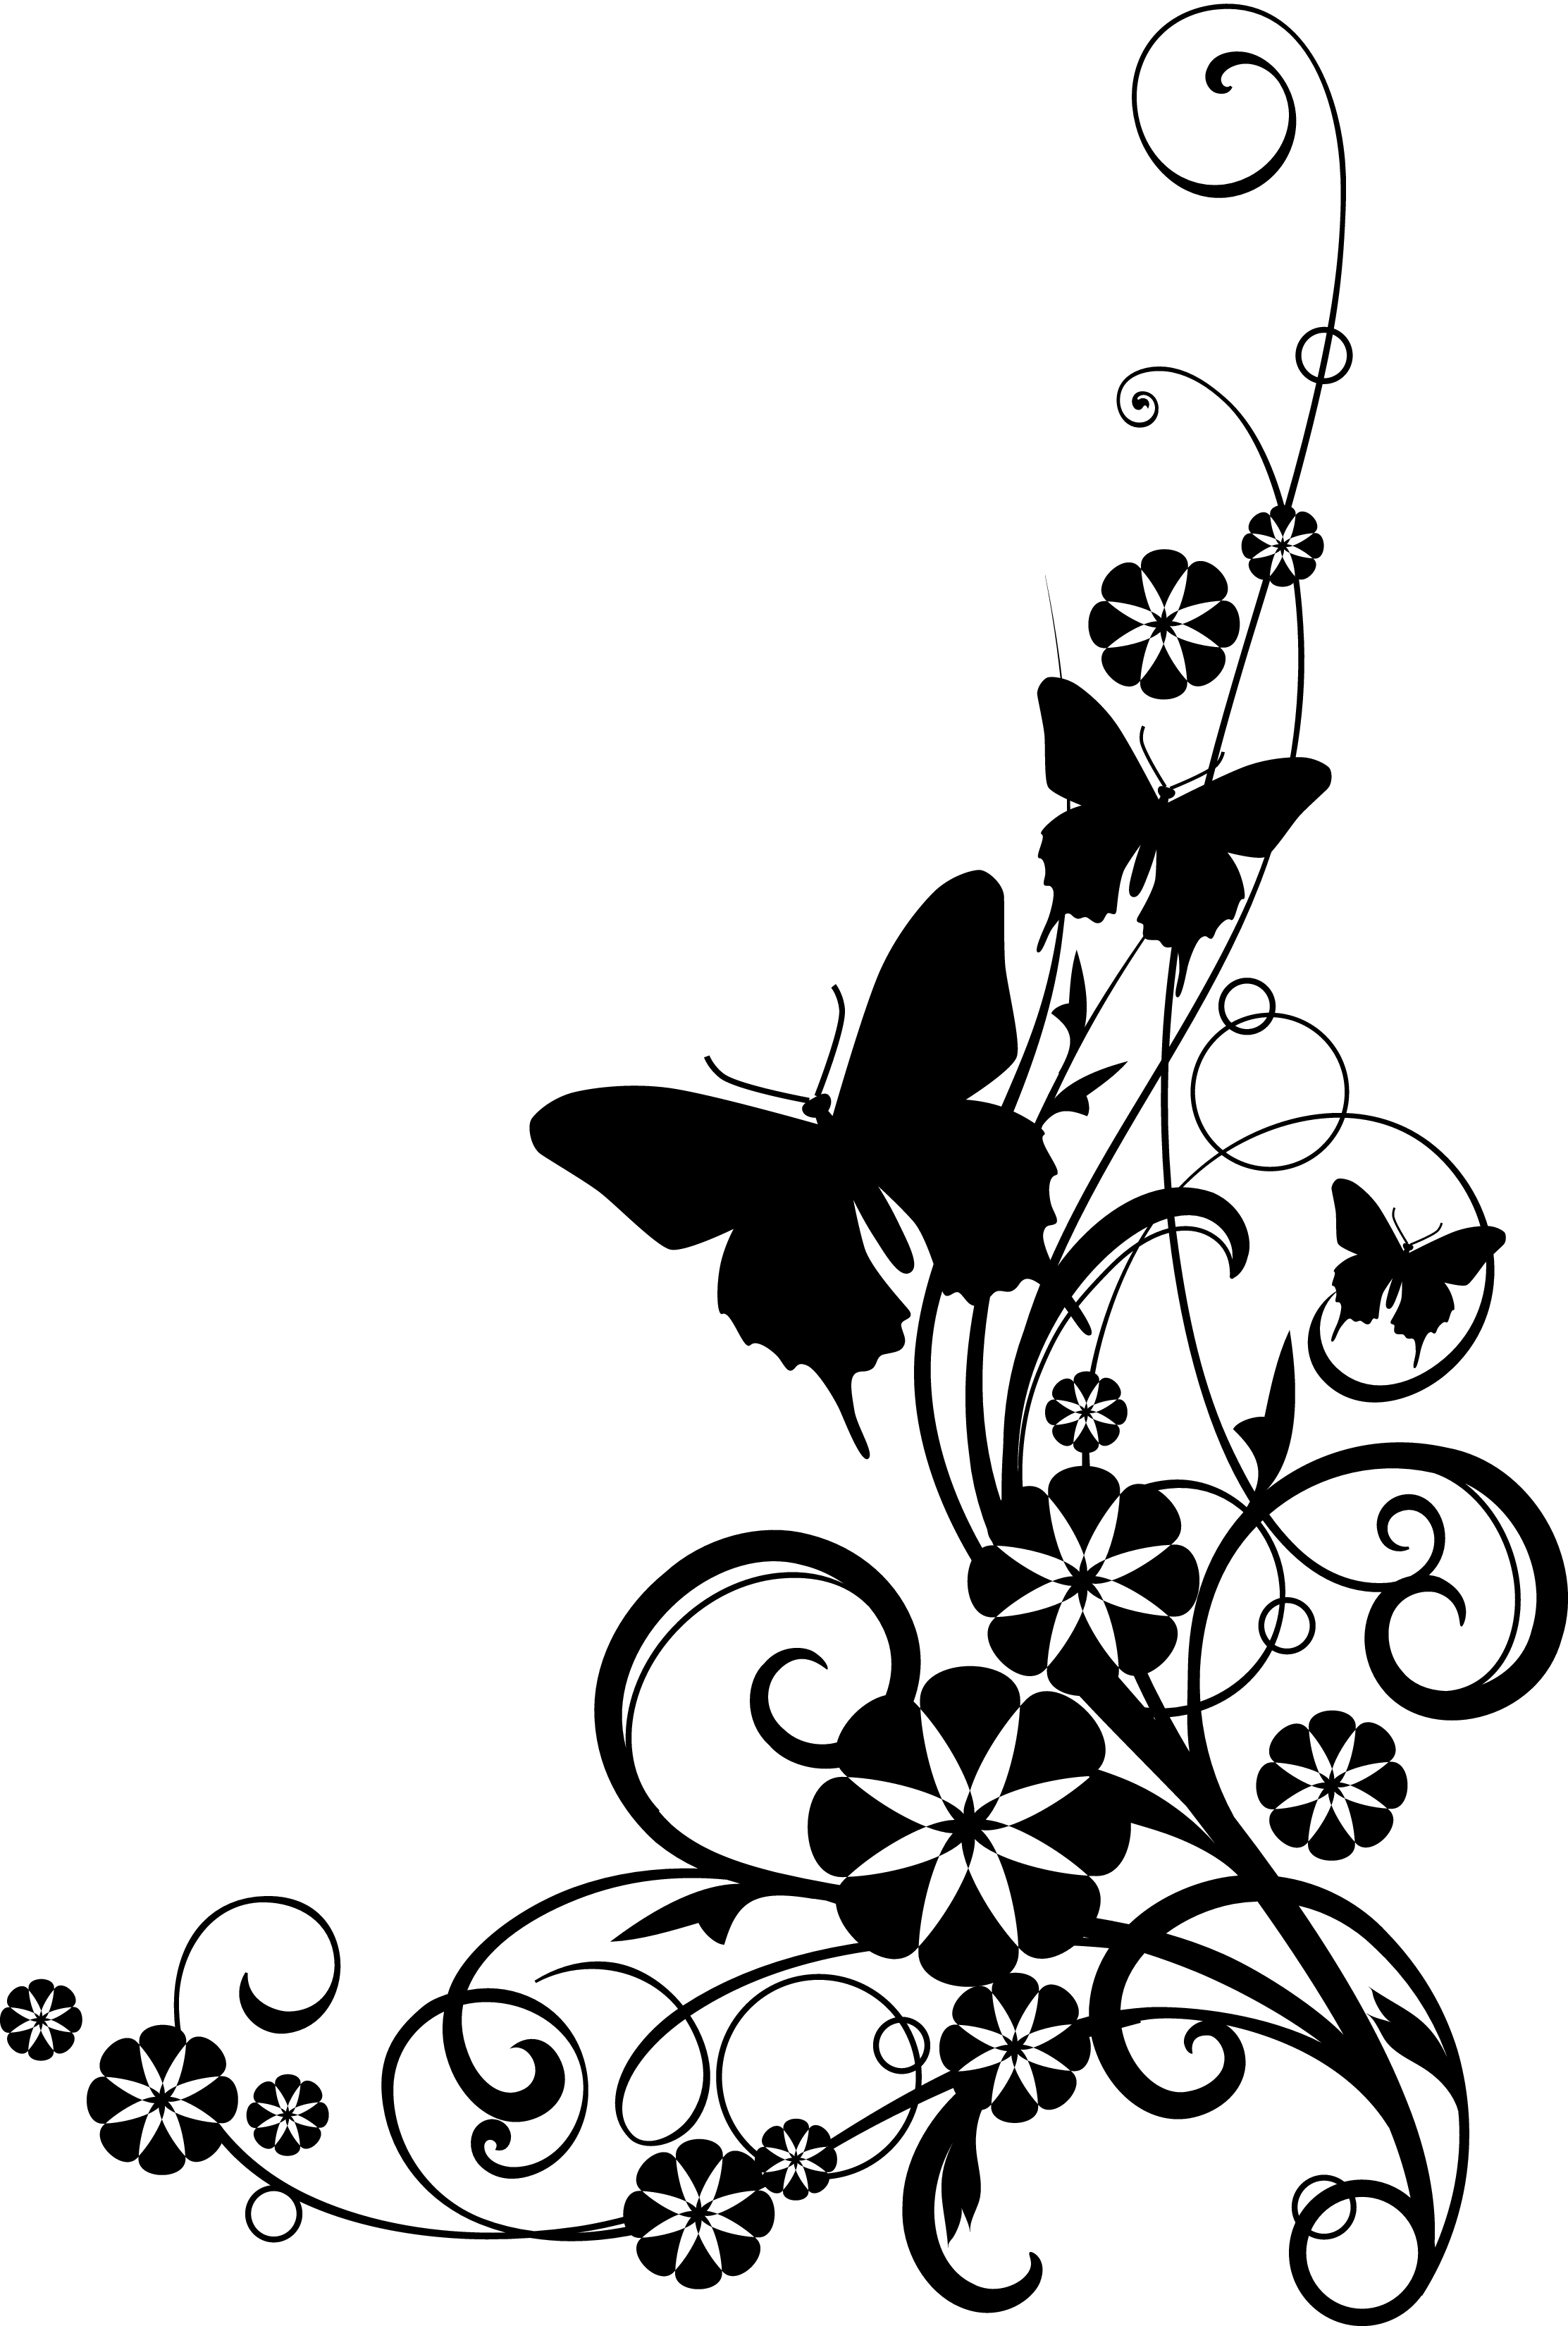 Vine Clipart Black And White.